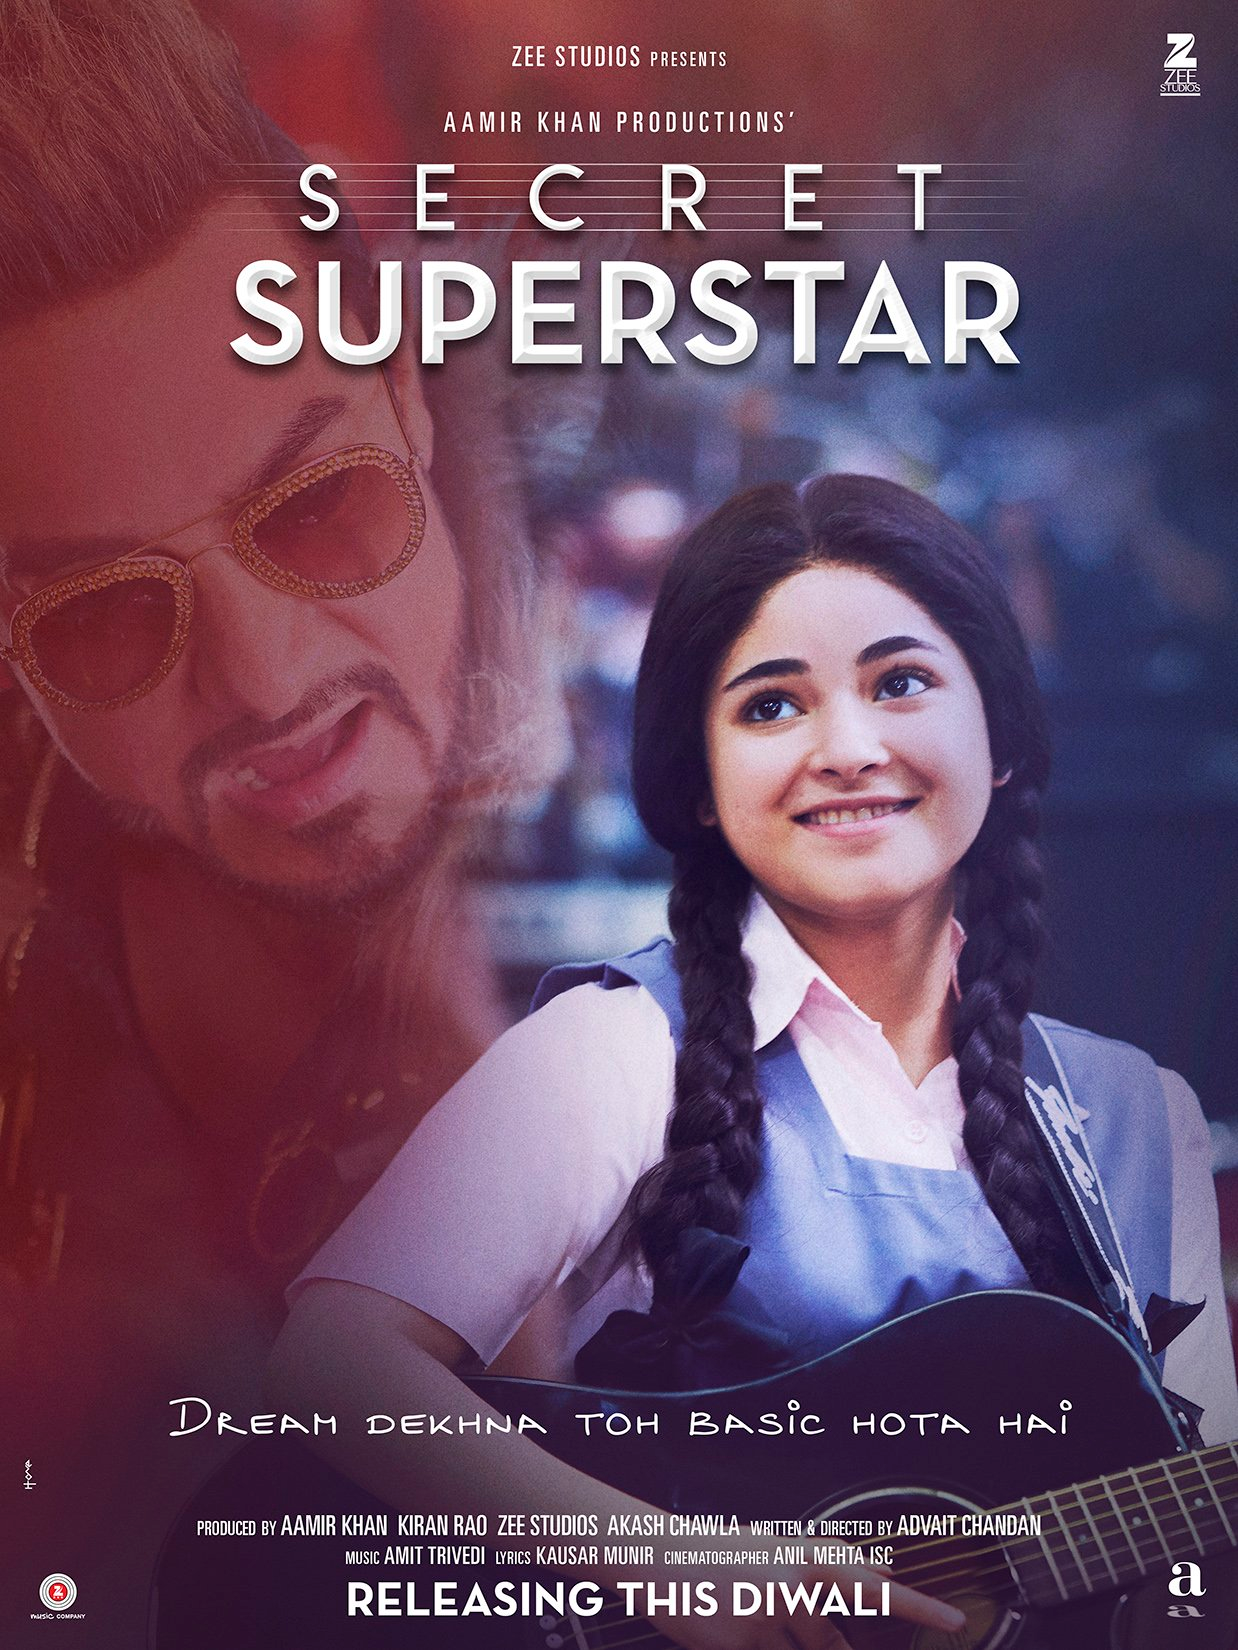 Aamir Khan's Secret Superstar comes with new poster release